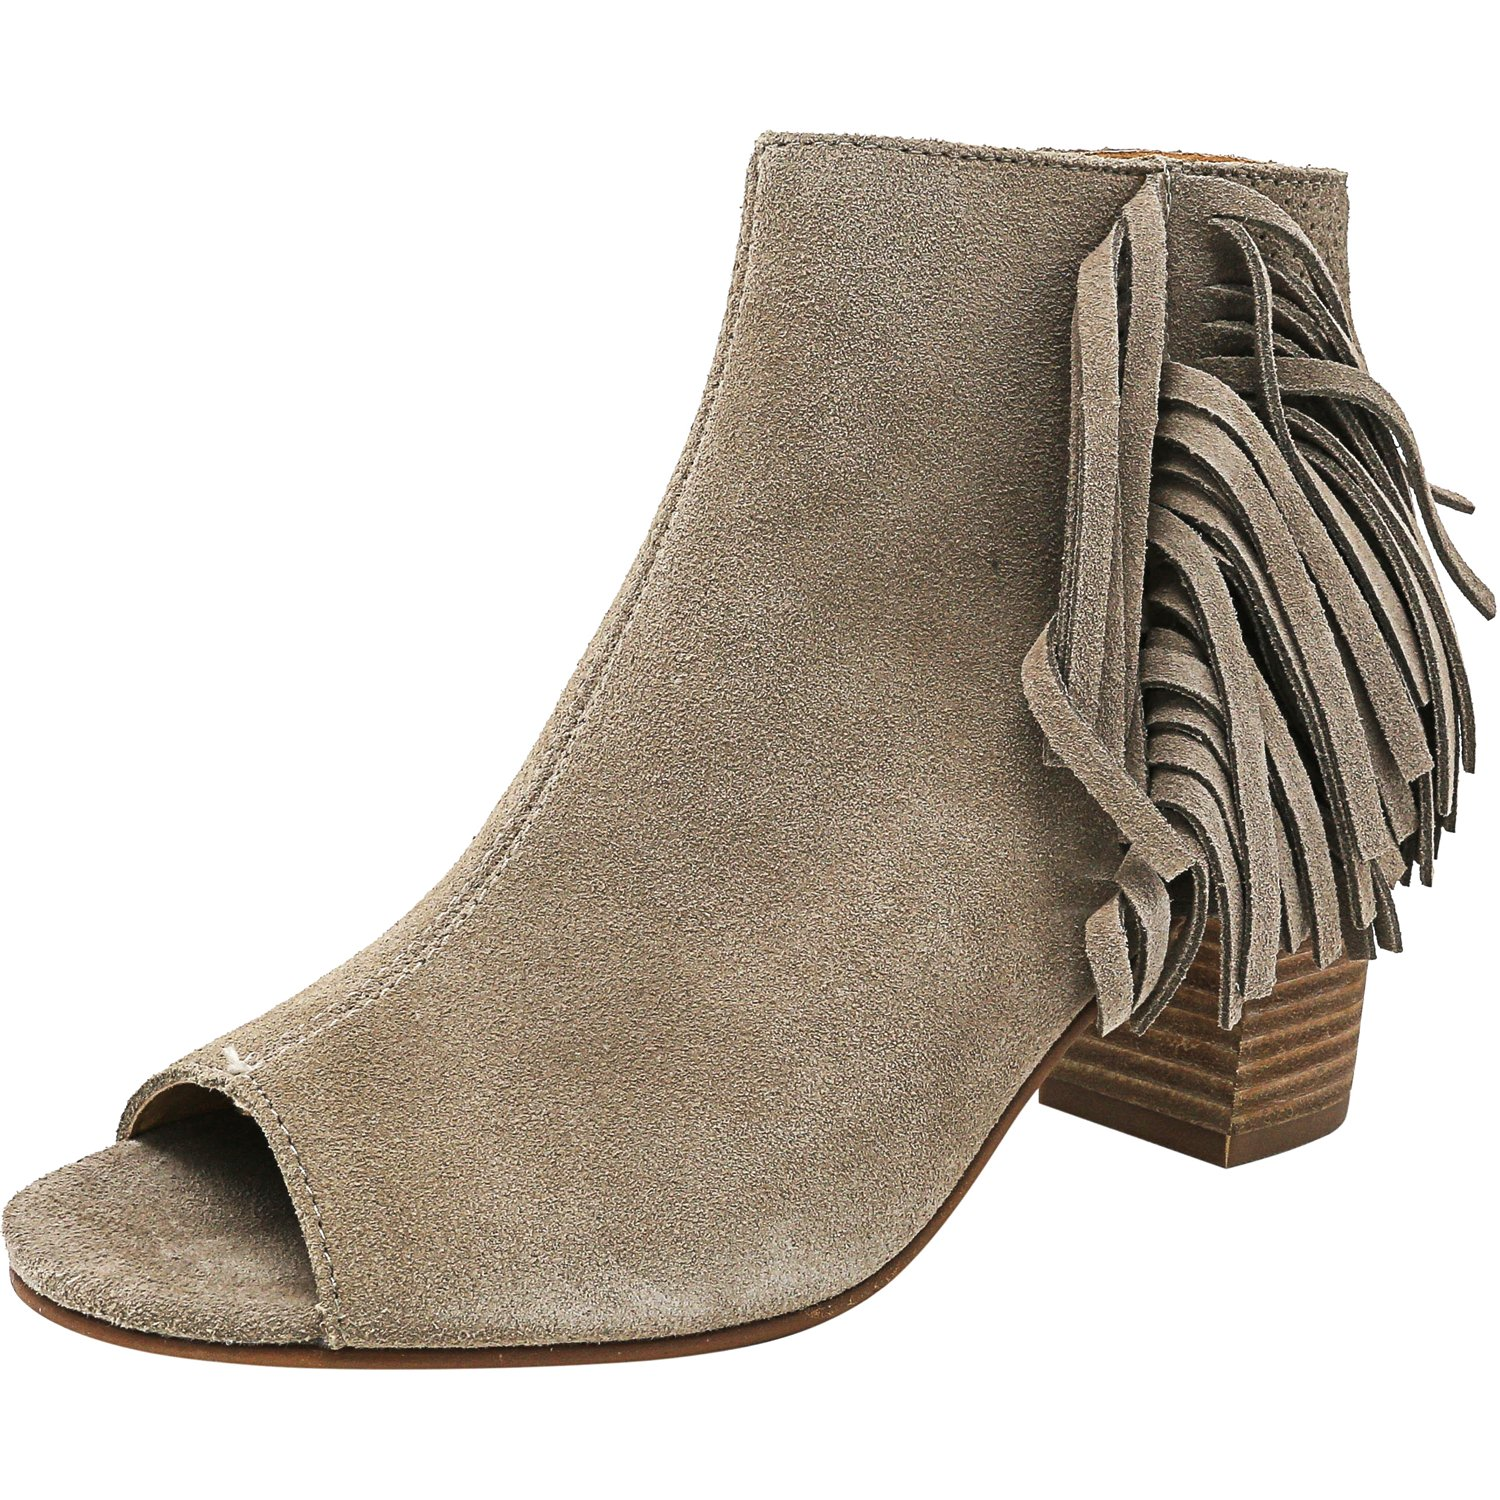 Kensie Women's Erika Taupe Ankle-High Suede Boot - 6.5M